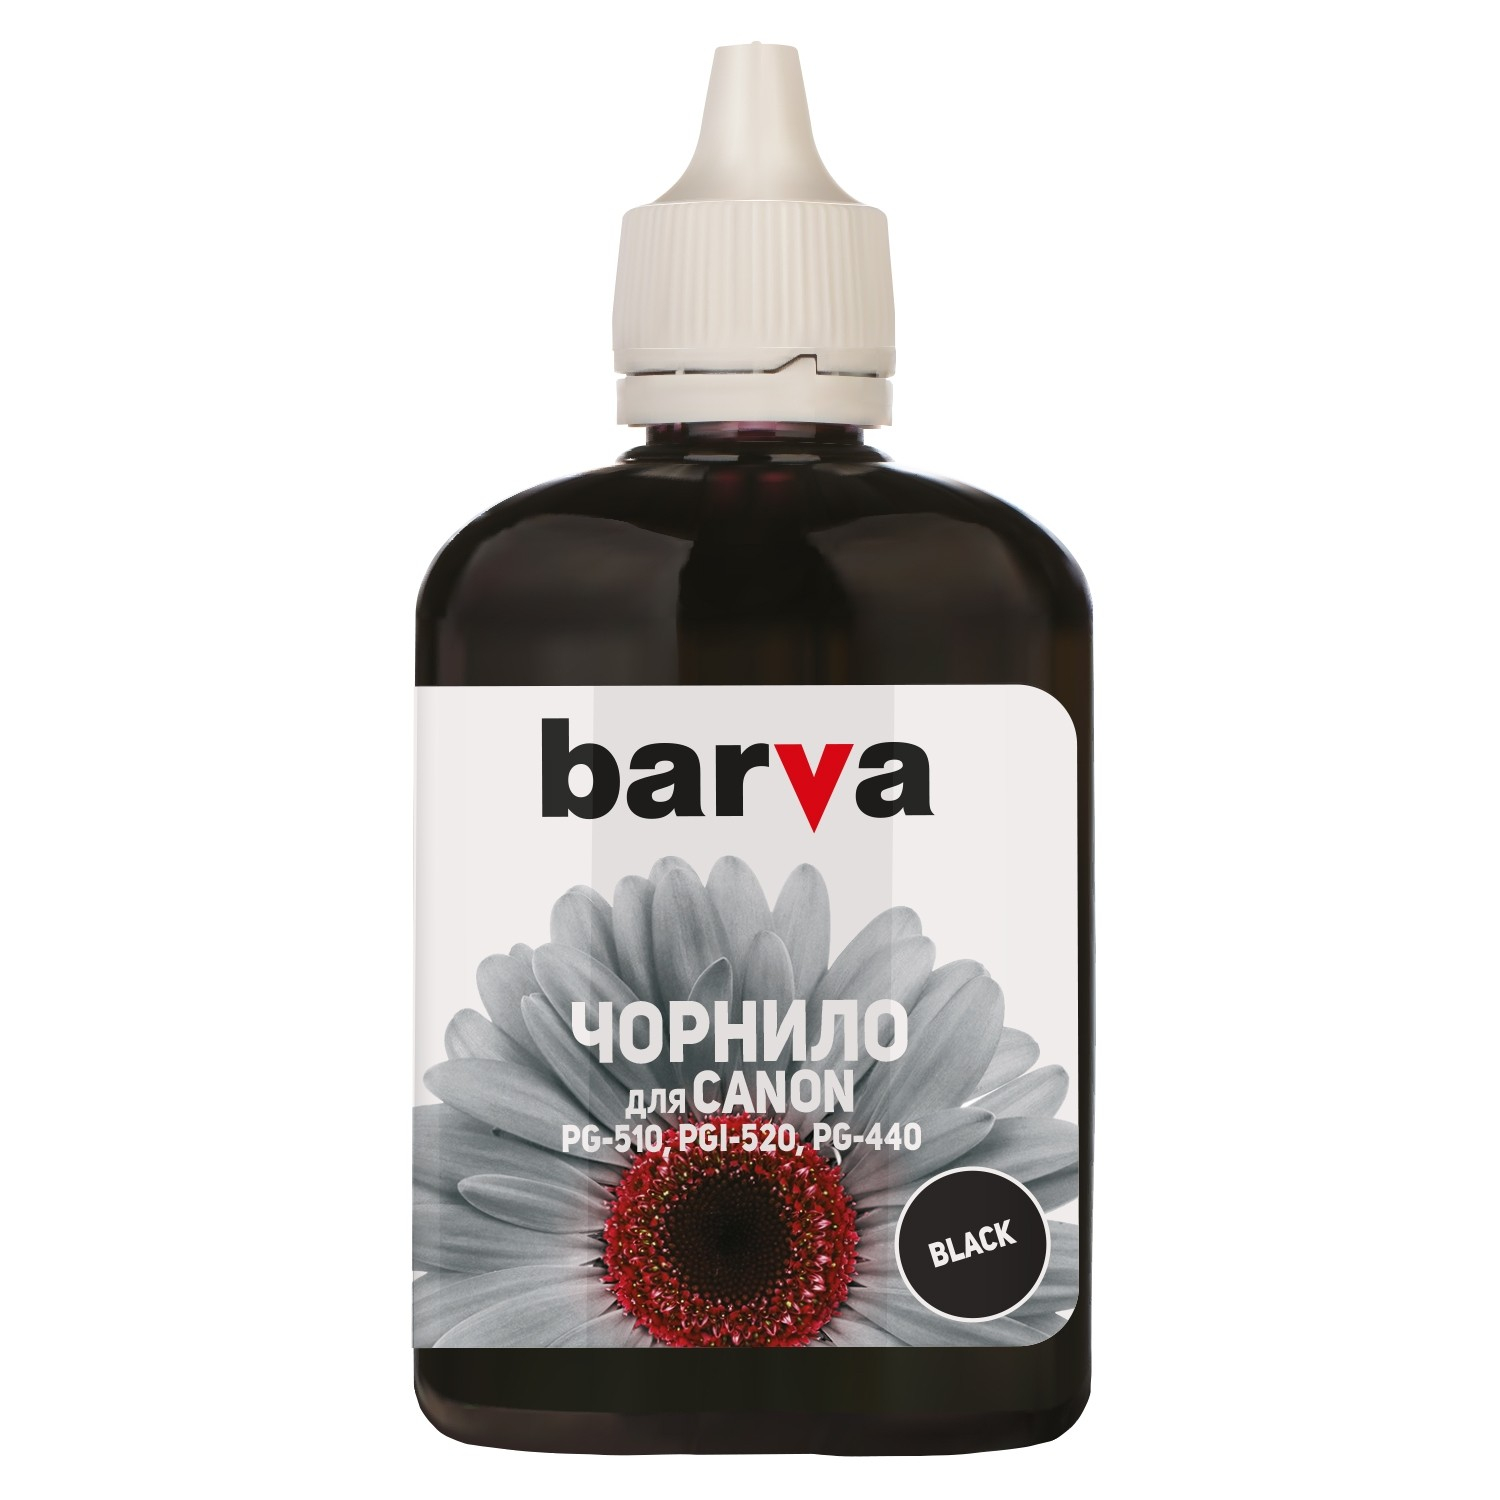 ЧЕРНИЛА CANON PGI 520/PG 510 MG2140/MP230/MP250/MP280 BLACK 90 г ПИГМЕНТ C520-297 BARVA